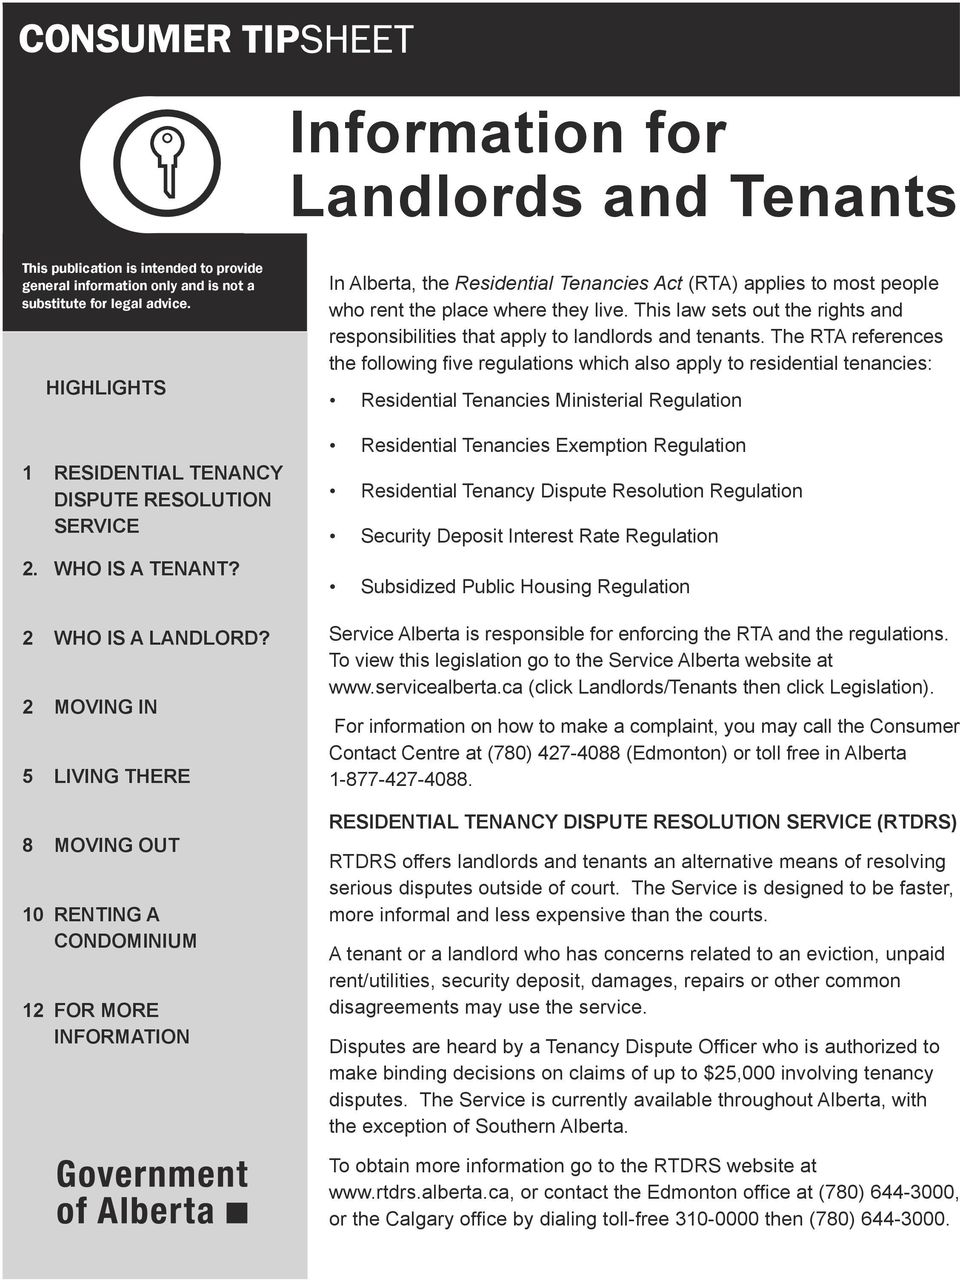 2 MOVING IN 5 LIVING THERE 8 MOVING OUT 10 RENTING A CONDOMINIUM 12 FOR MORE INFORMATION In Alberta, the Residential Tenancies Act (RTA) applies to most people who rent the place where they live.